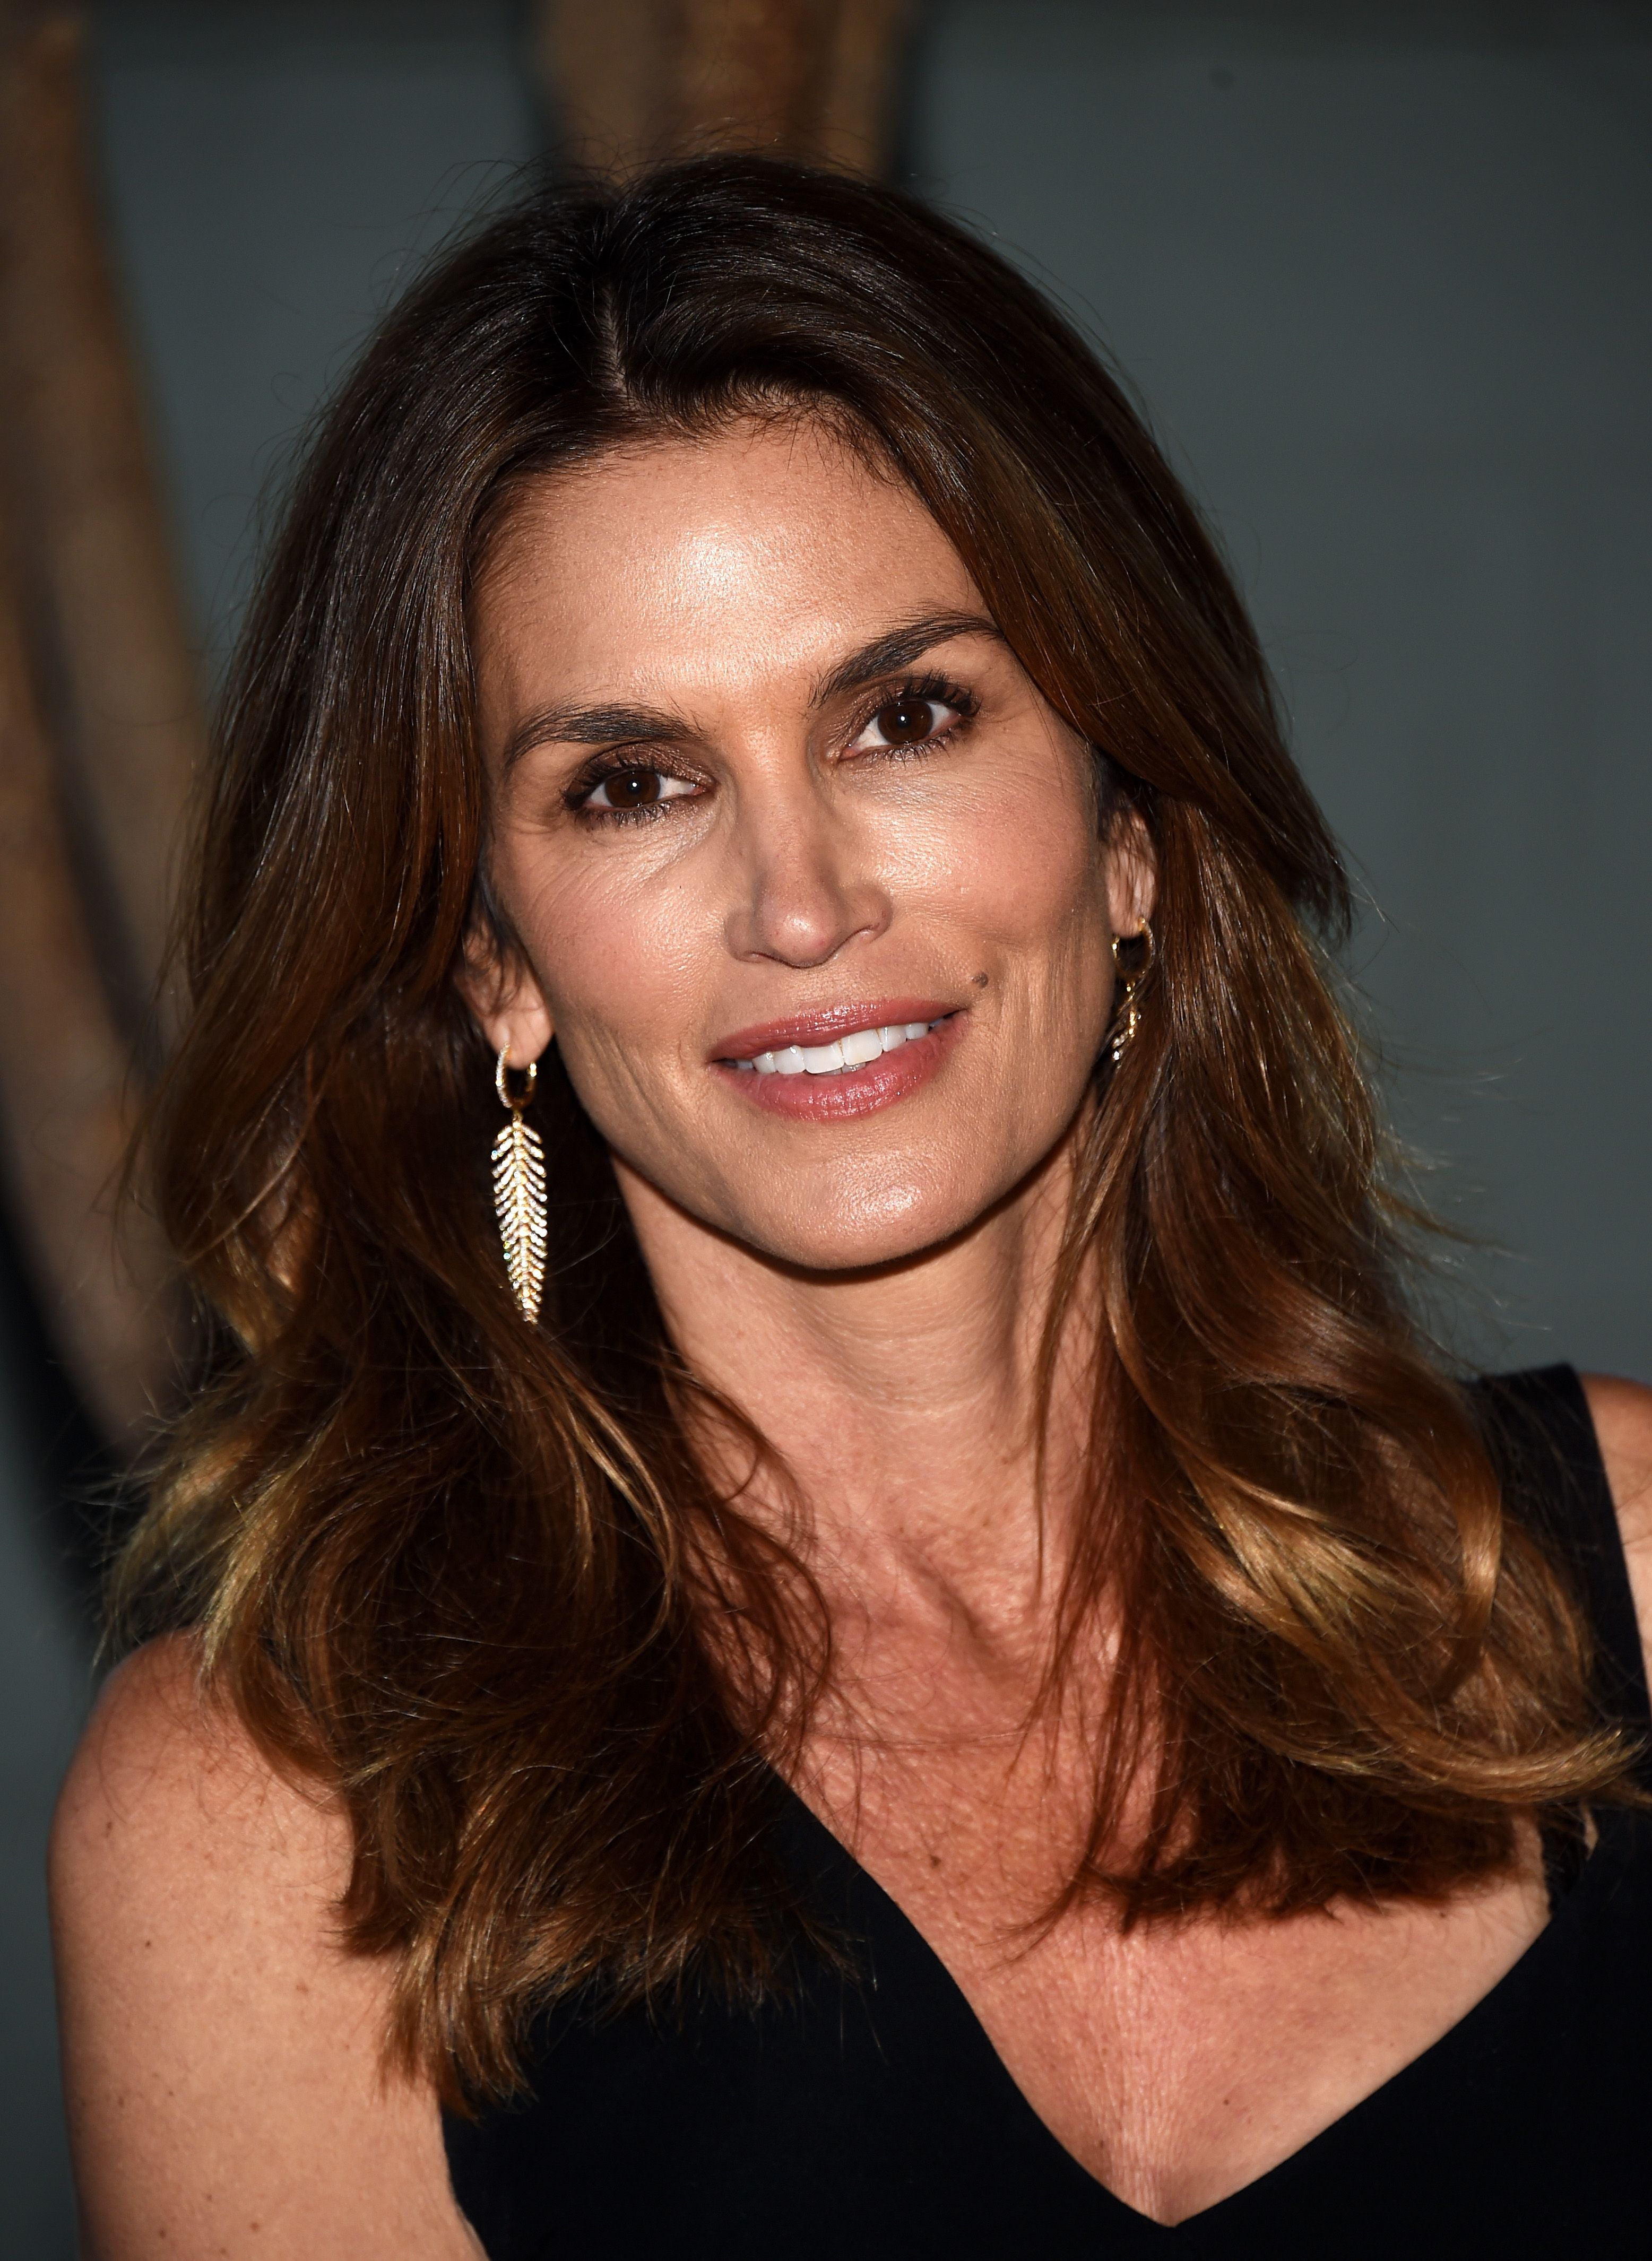 Stop Shaming Cindy Crawford for Looking Too Old